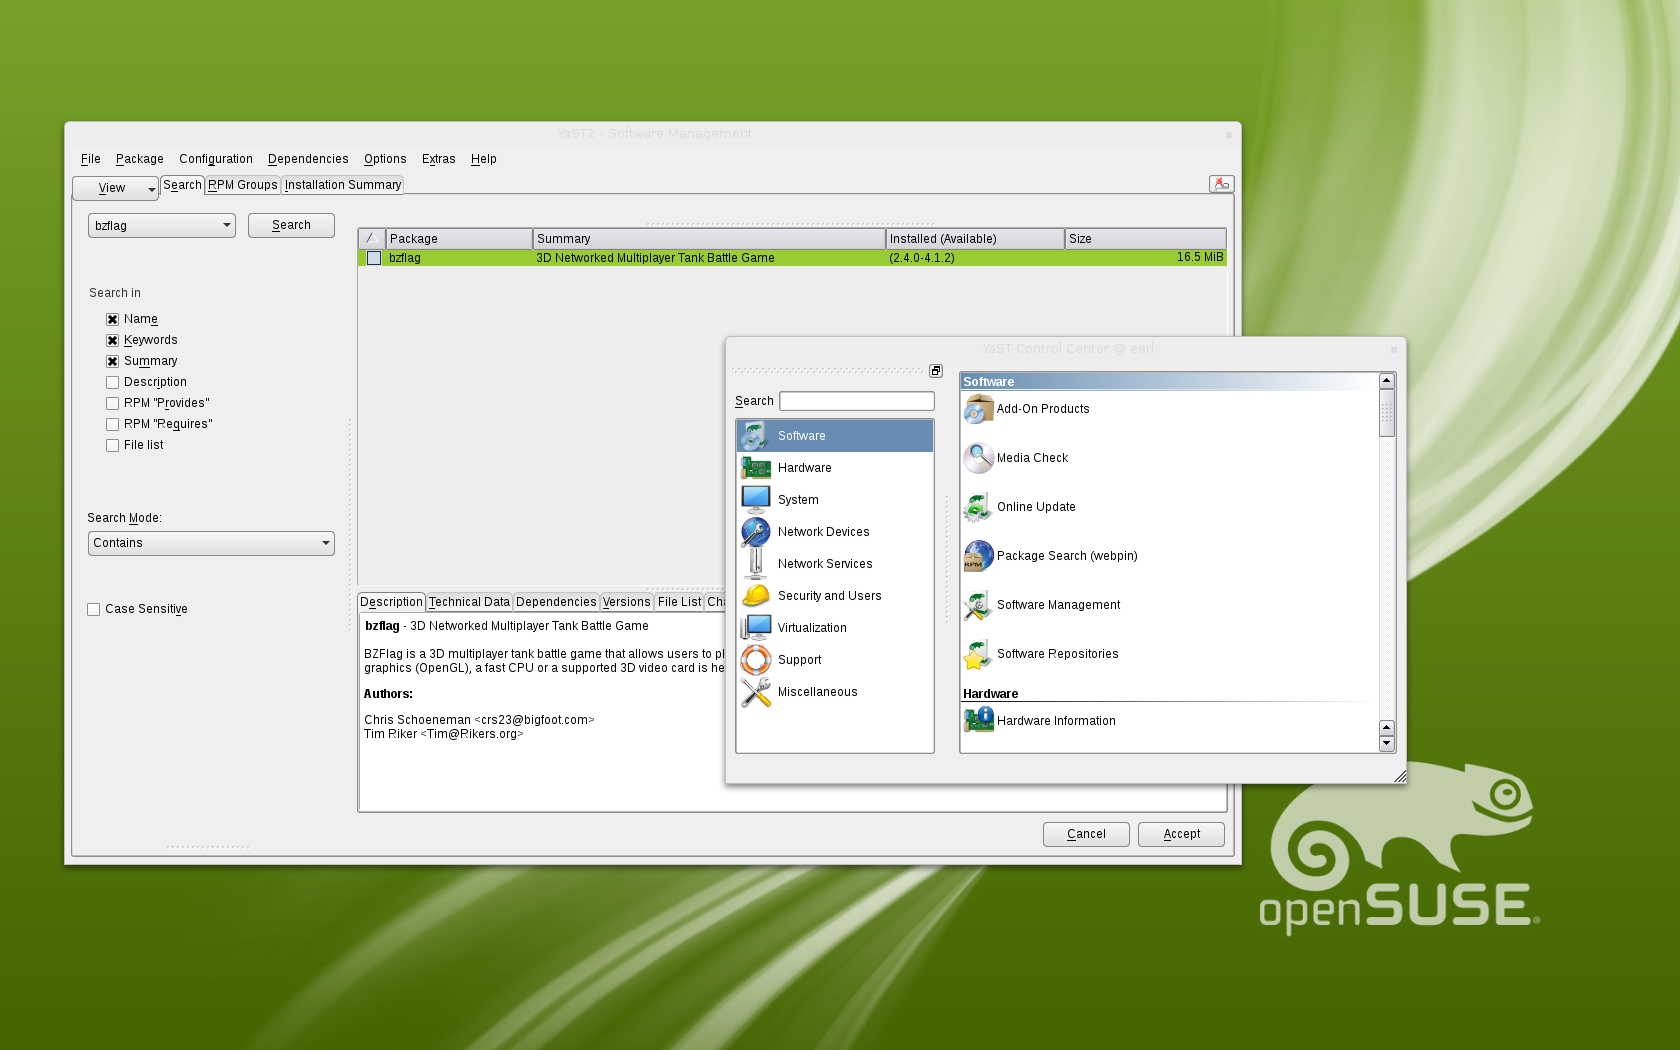 File:OpenSUSE 12.1 YaST QT.png